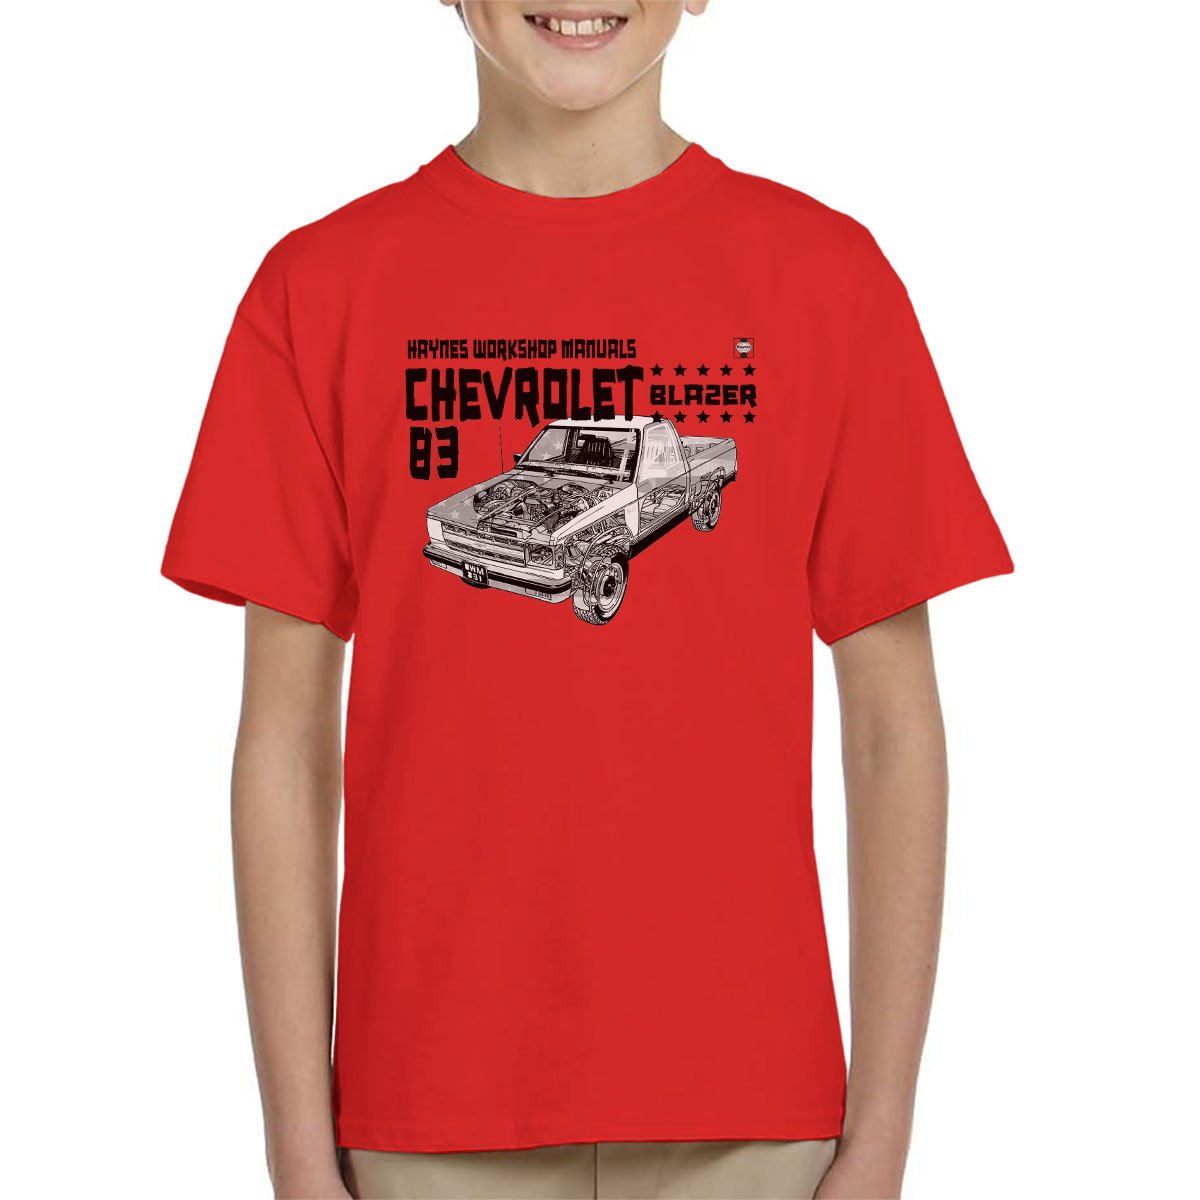 Haynes Owners Workshop Manual Chevrolet Blazer 83 Black Kid's T-Shirt